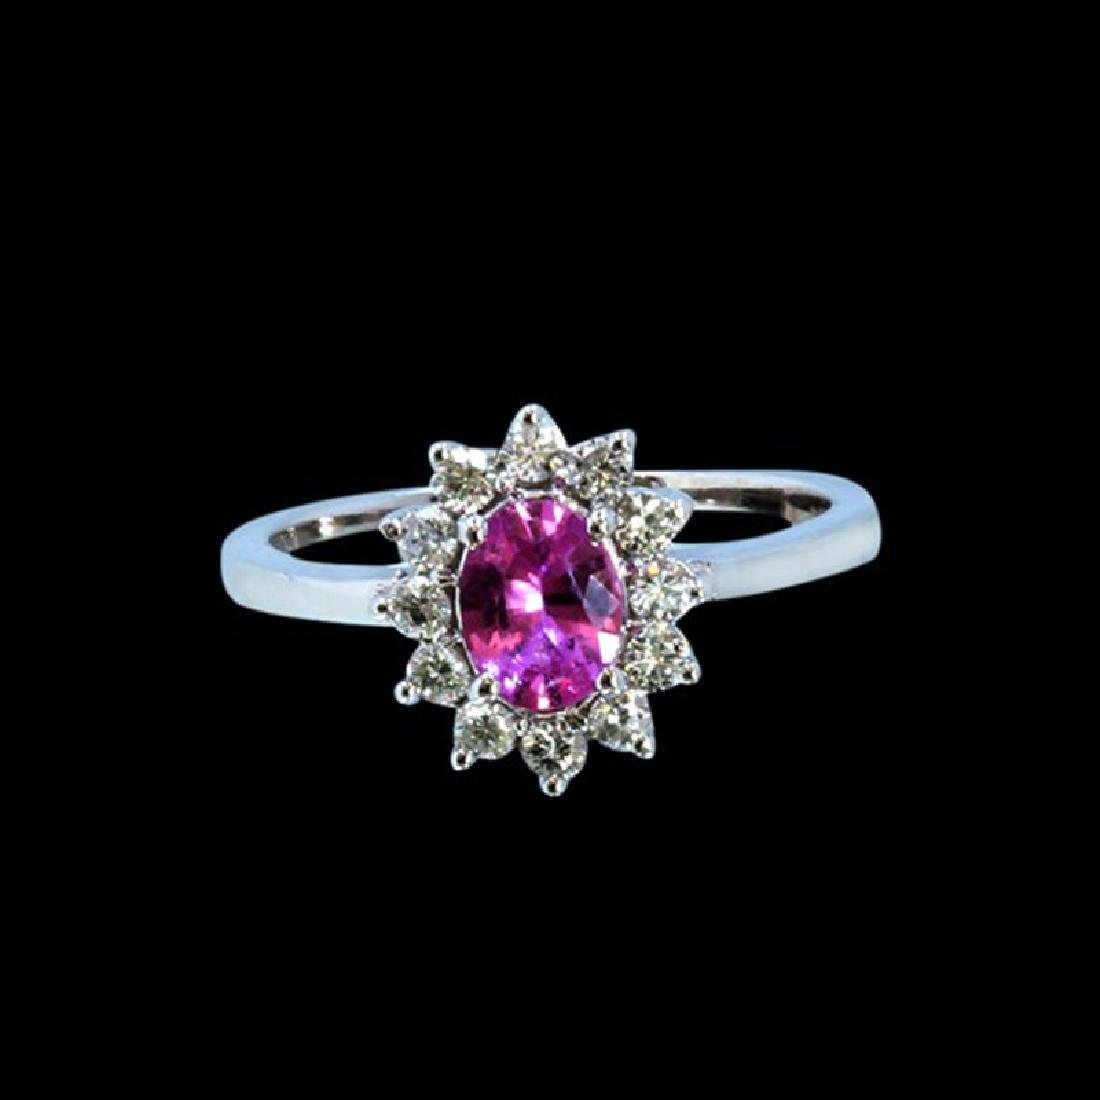 0.61CT NATURAL CEYLON PINK SAPPHIRE 14K WHITE GOLD RING